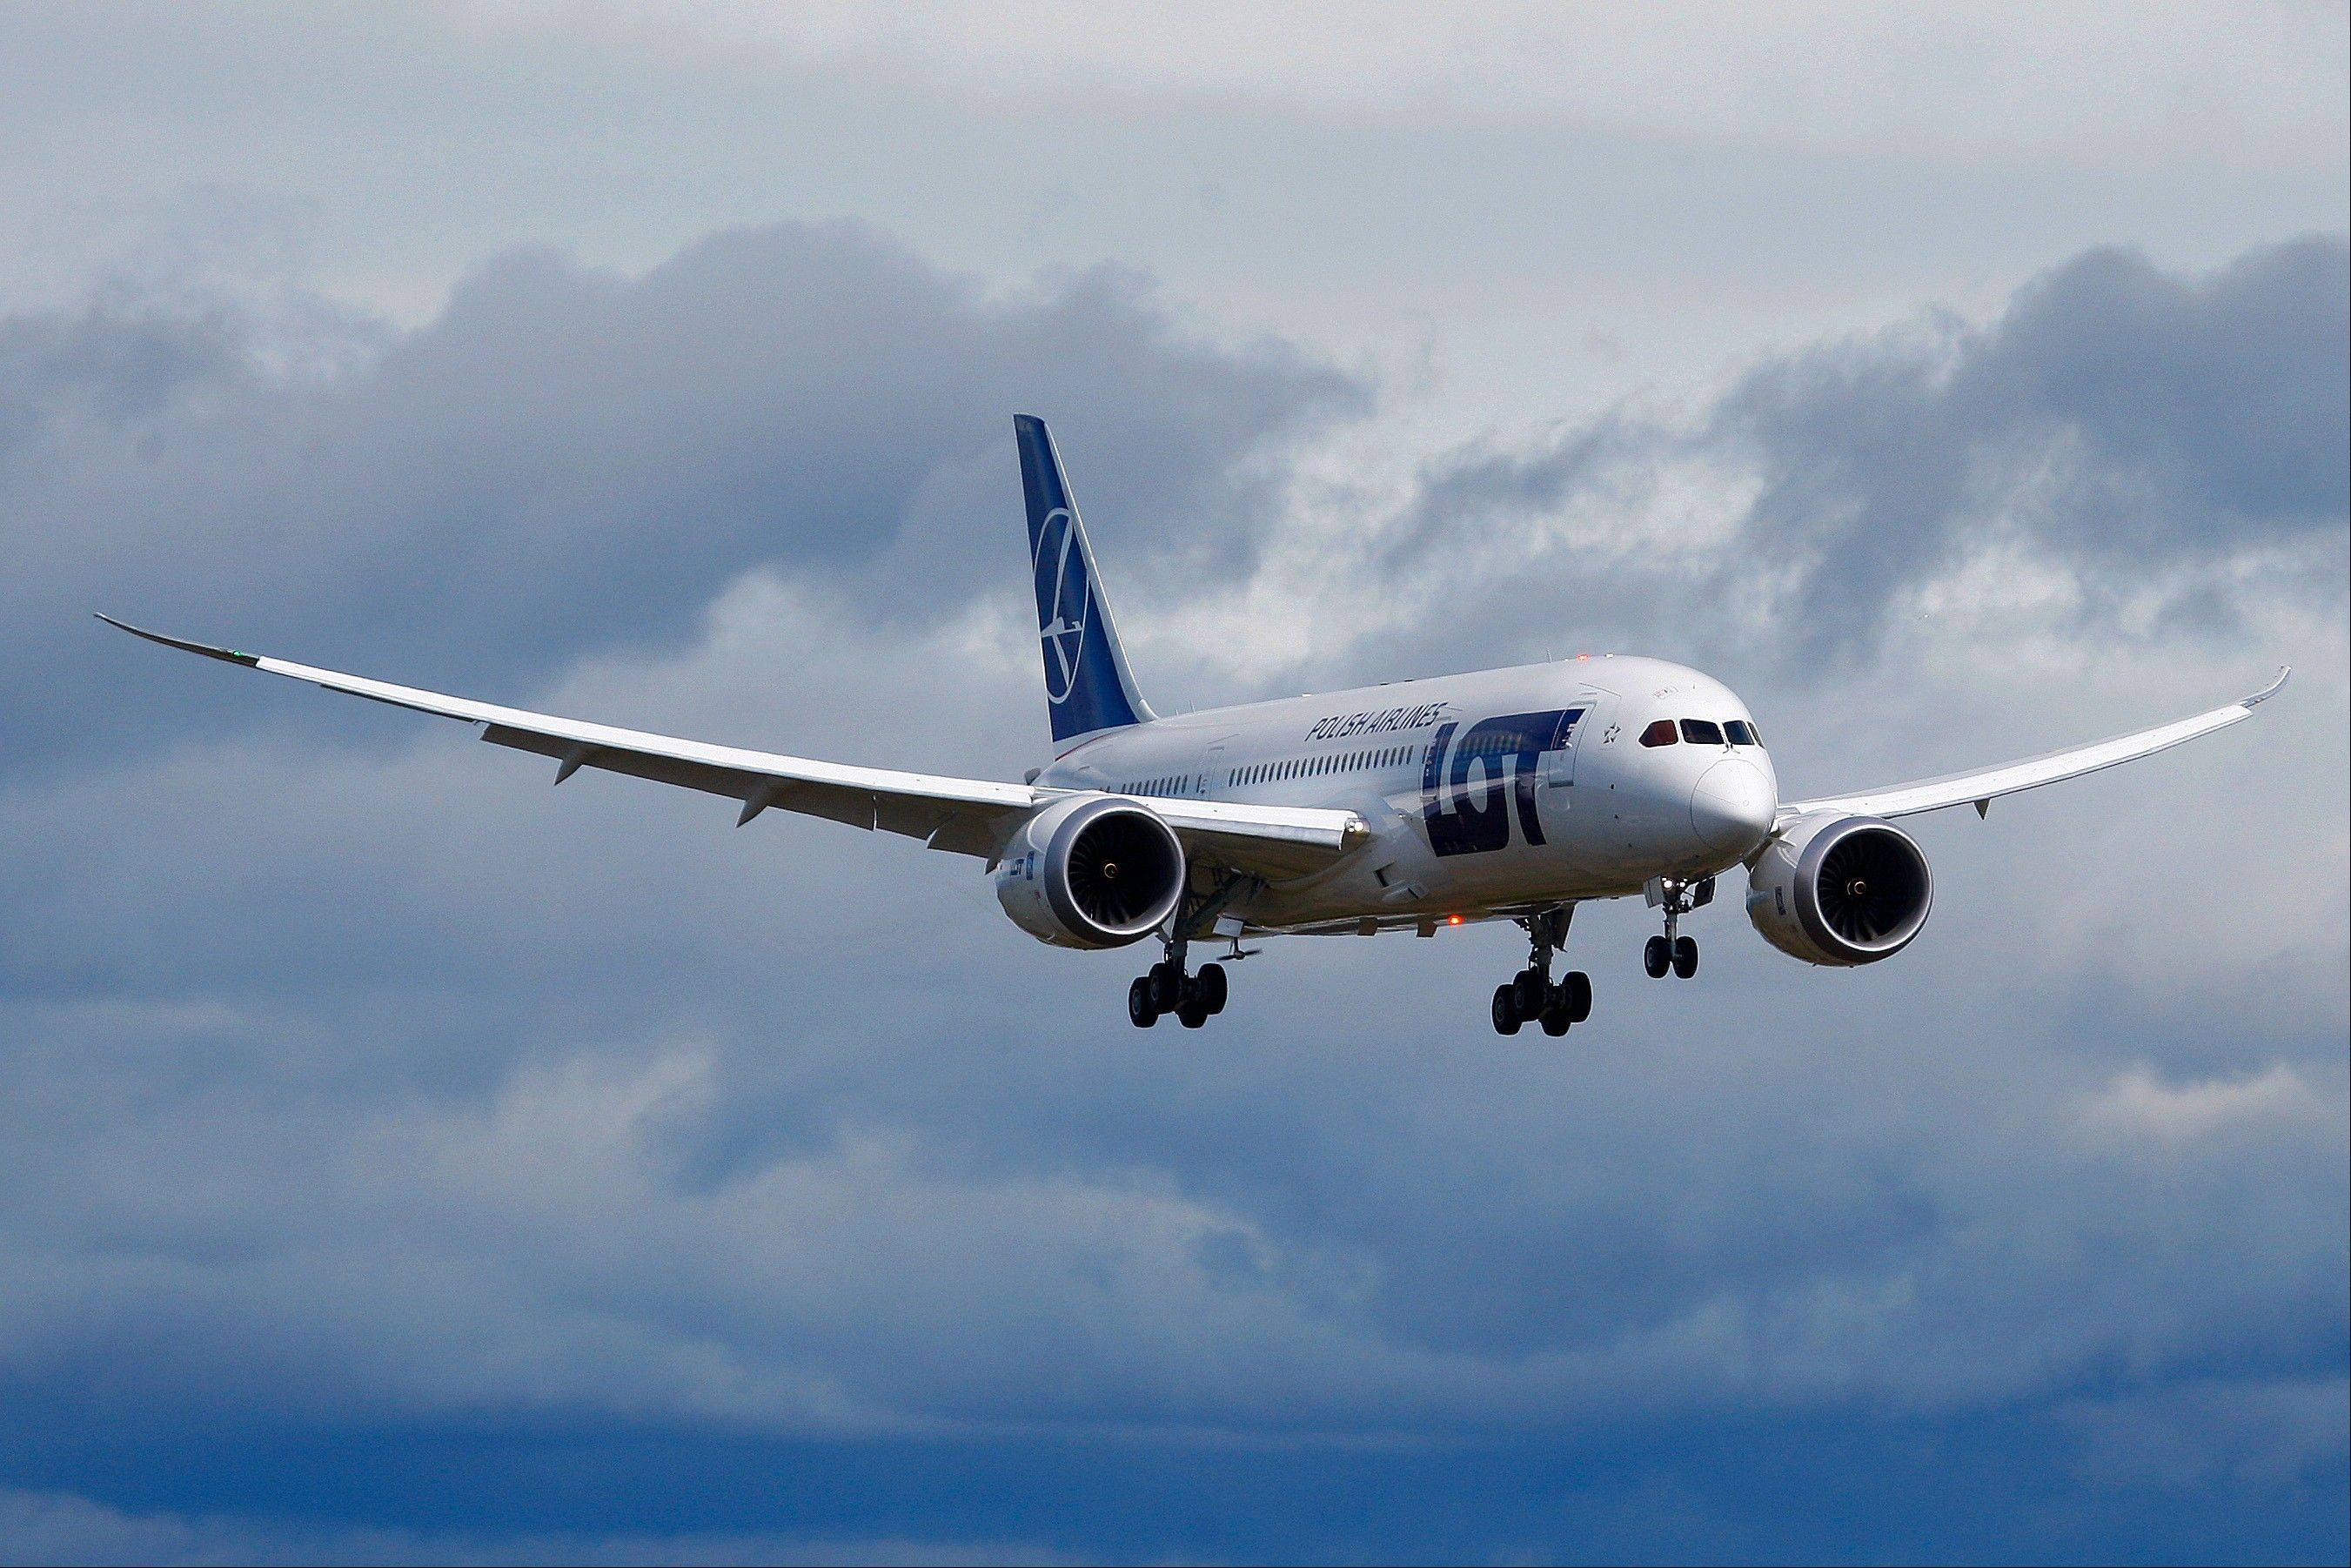 A Boeing-owned 787 production plane built for LOT Polish Airlines lands after a demonstration flight Friday meant to be the final certification test for the 787's new battery system at Paine Field in Everett, Wash.